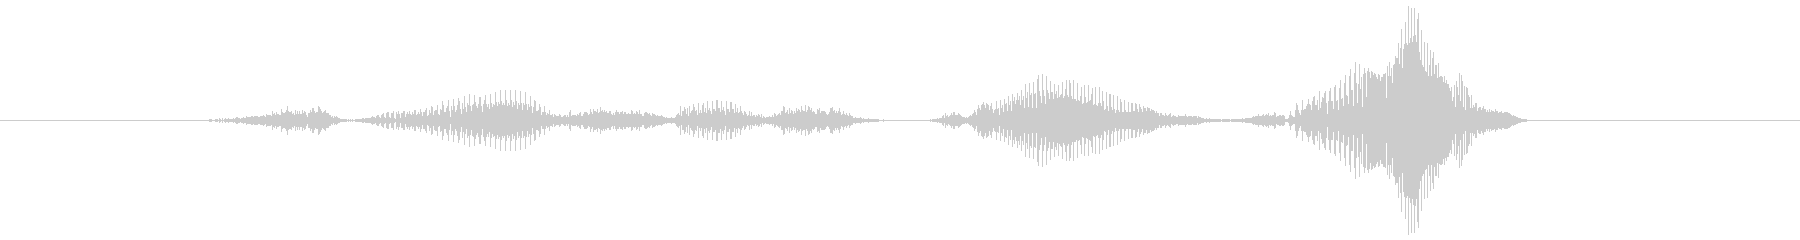 I'll give you an injection ☆'s unreproduced waveform